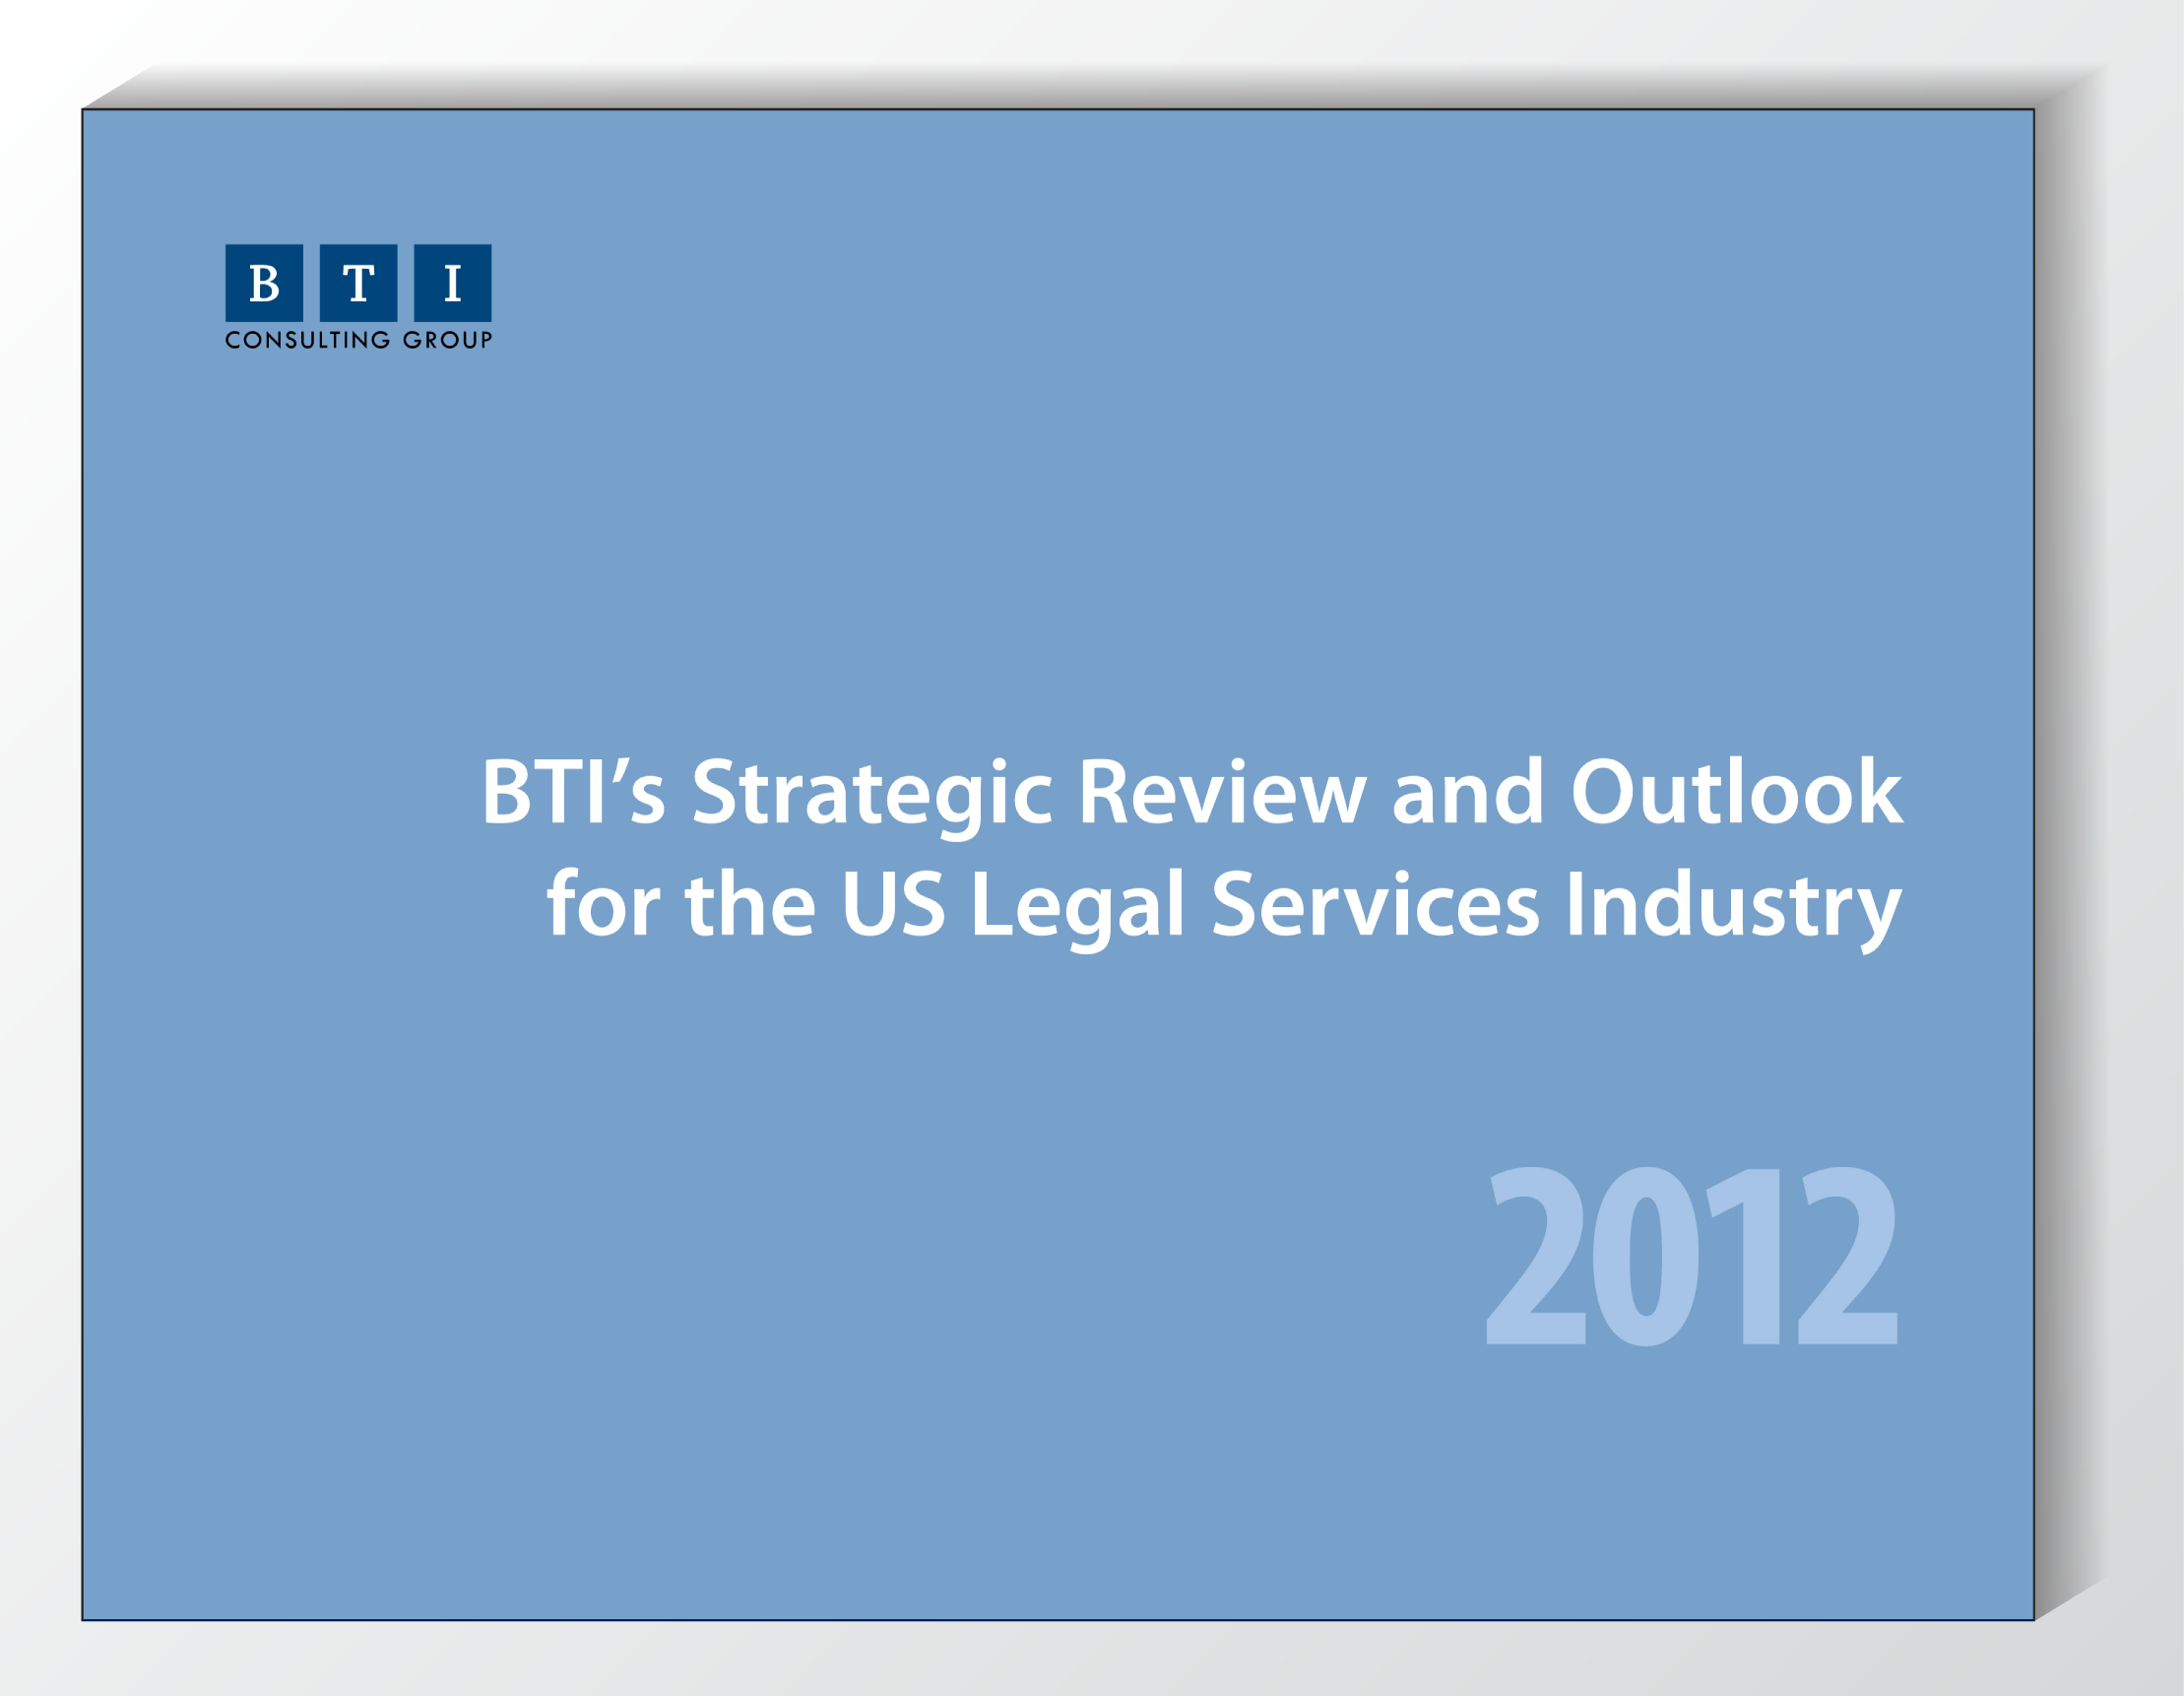 CLICK HERE TO DOWNLOAD YOUR COMPLIMENTARY EXECUTIVE SUMMARY